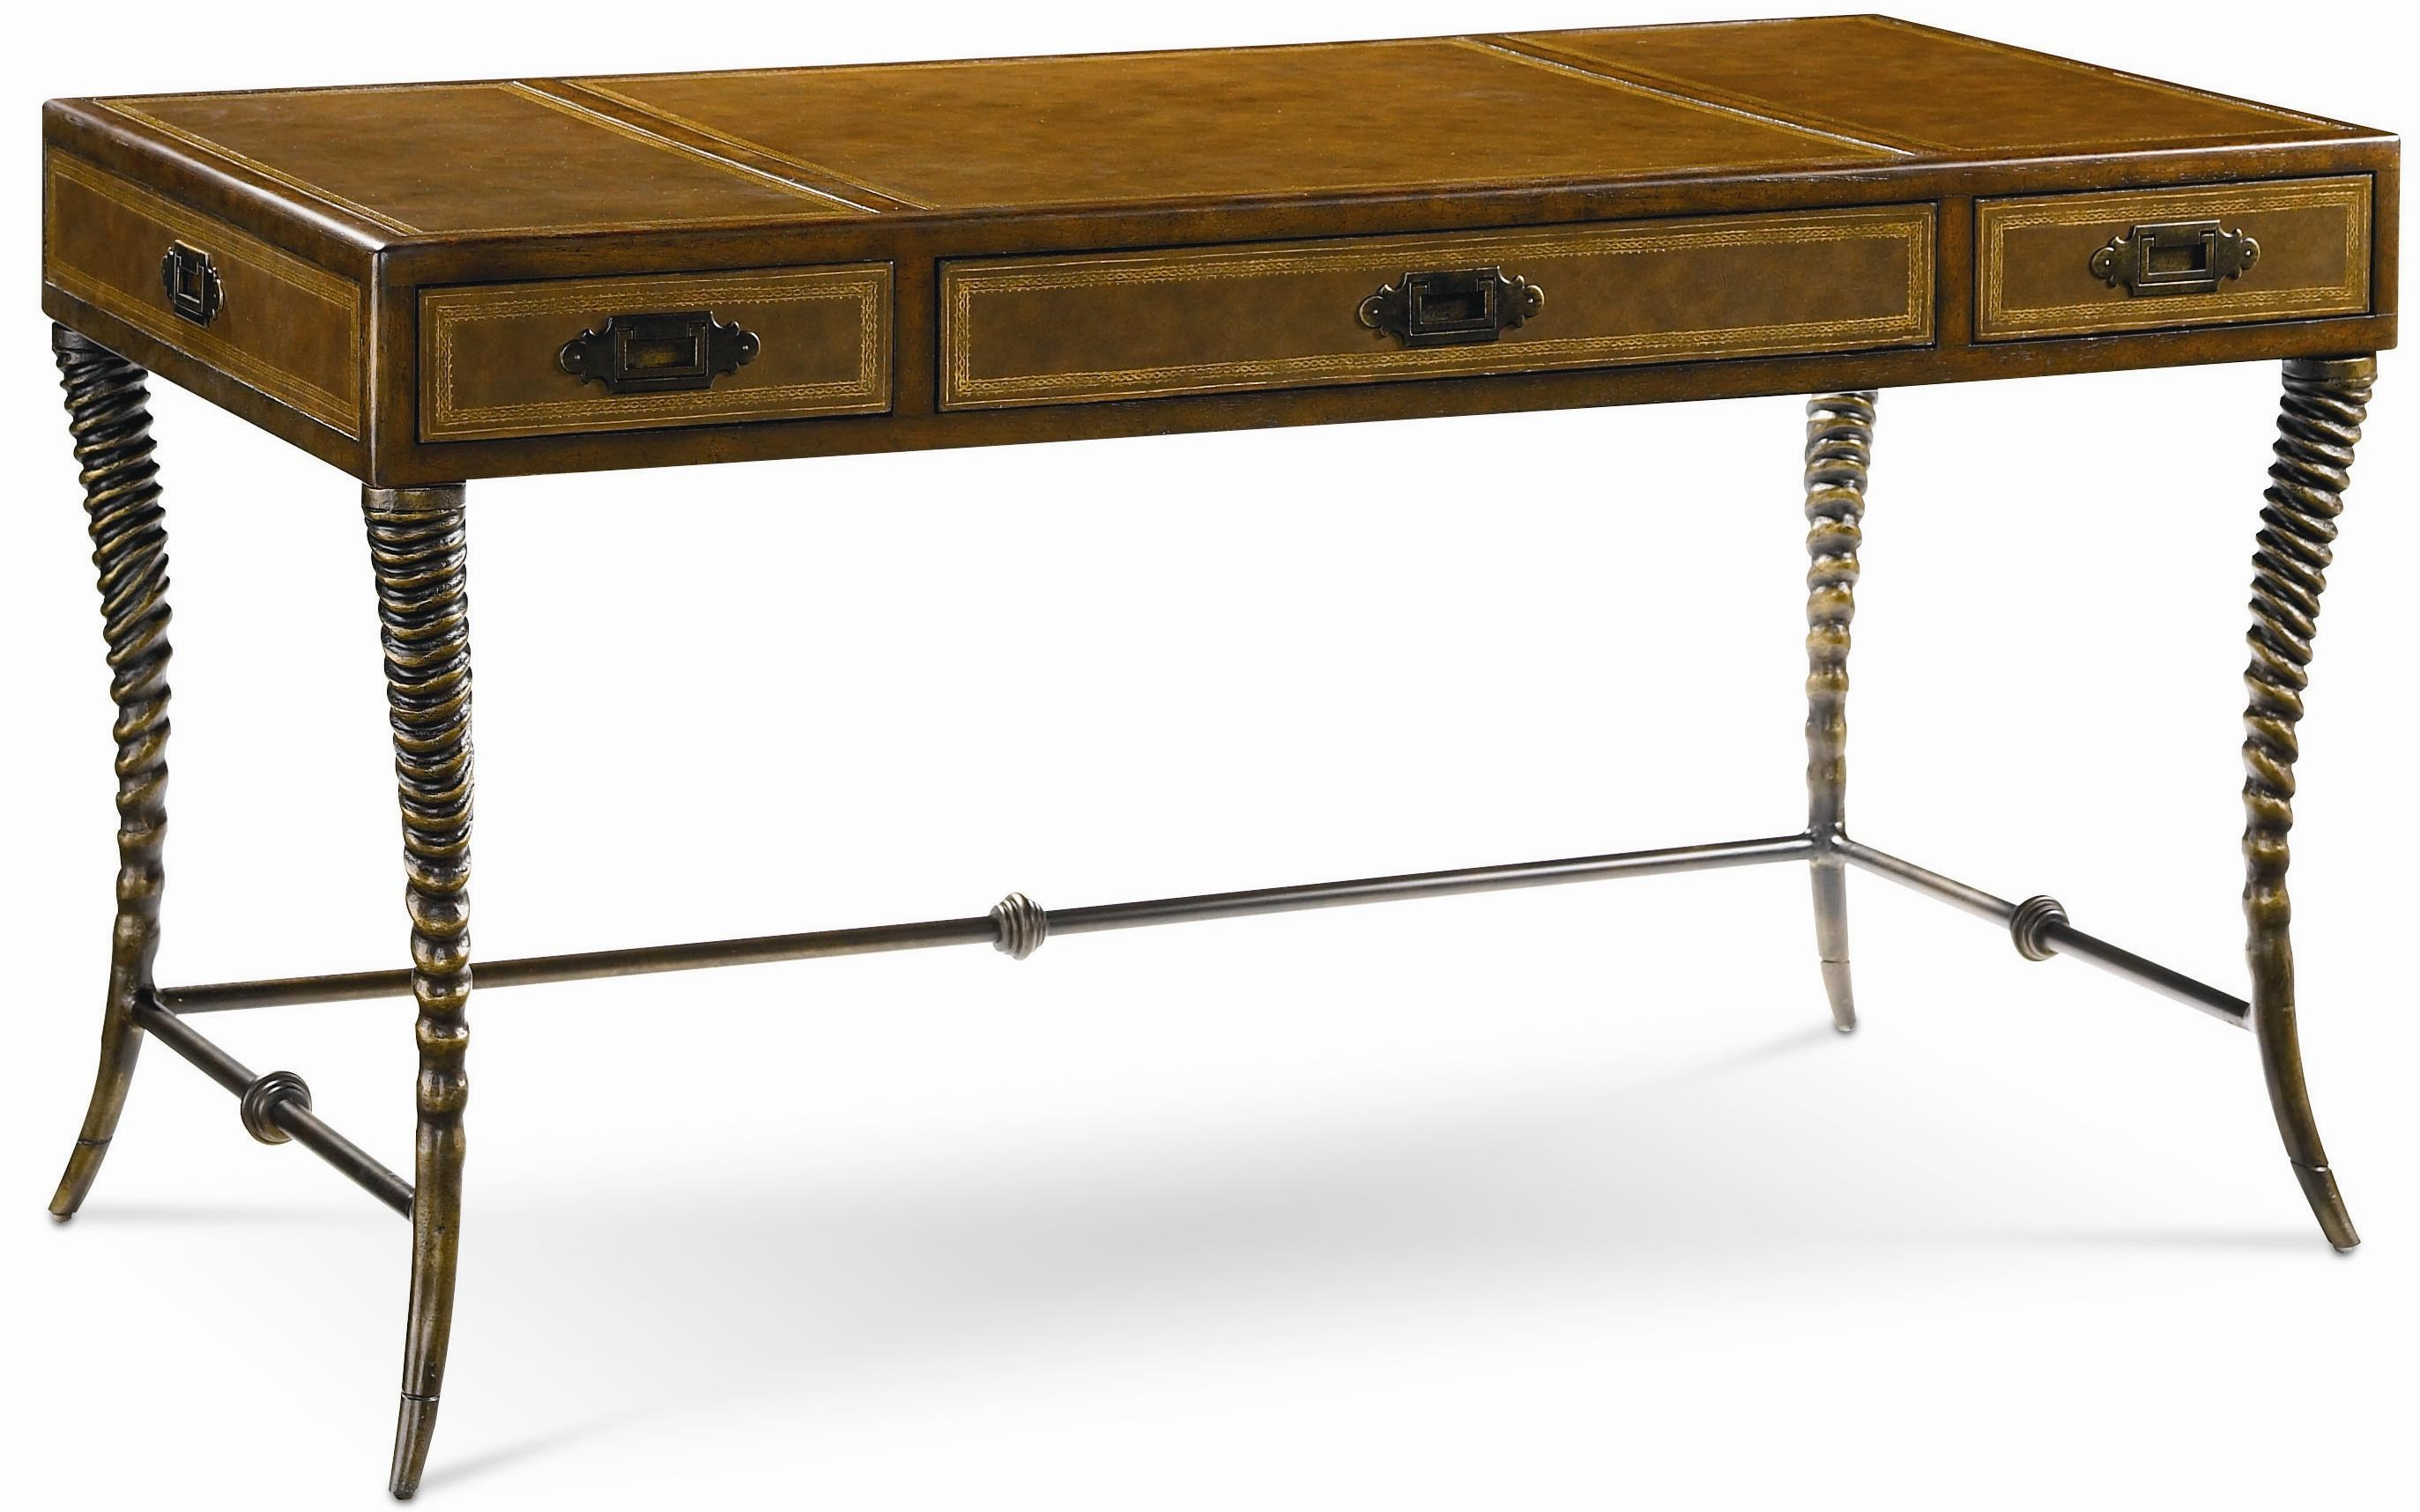 Thomasvilleu00ae Ernest Hemingway 46291-620 Safari Writing Desk : Baeru0026#39;s Furniture : Table Desk Boca ...